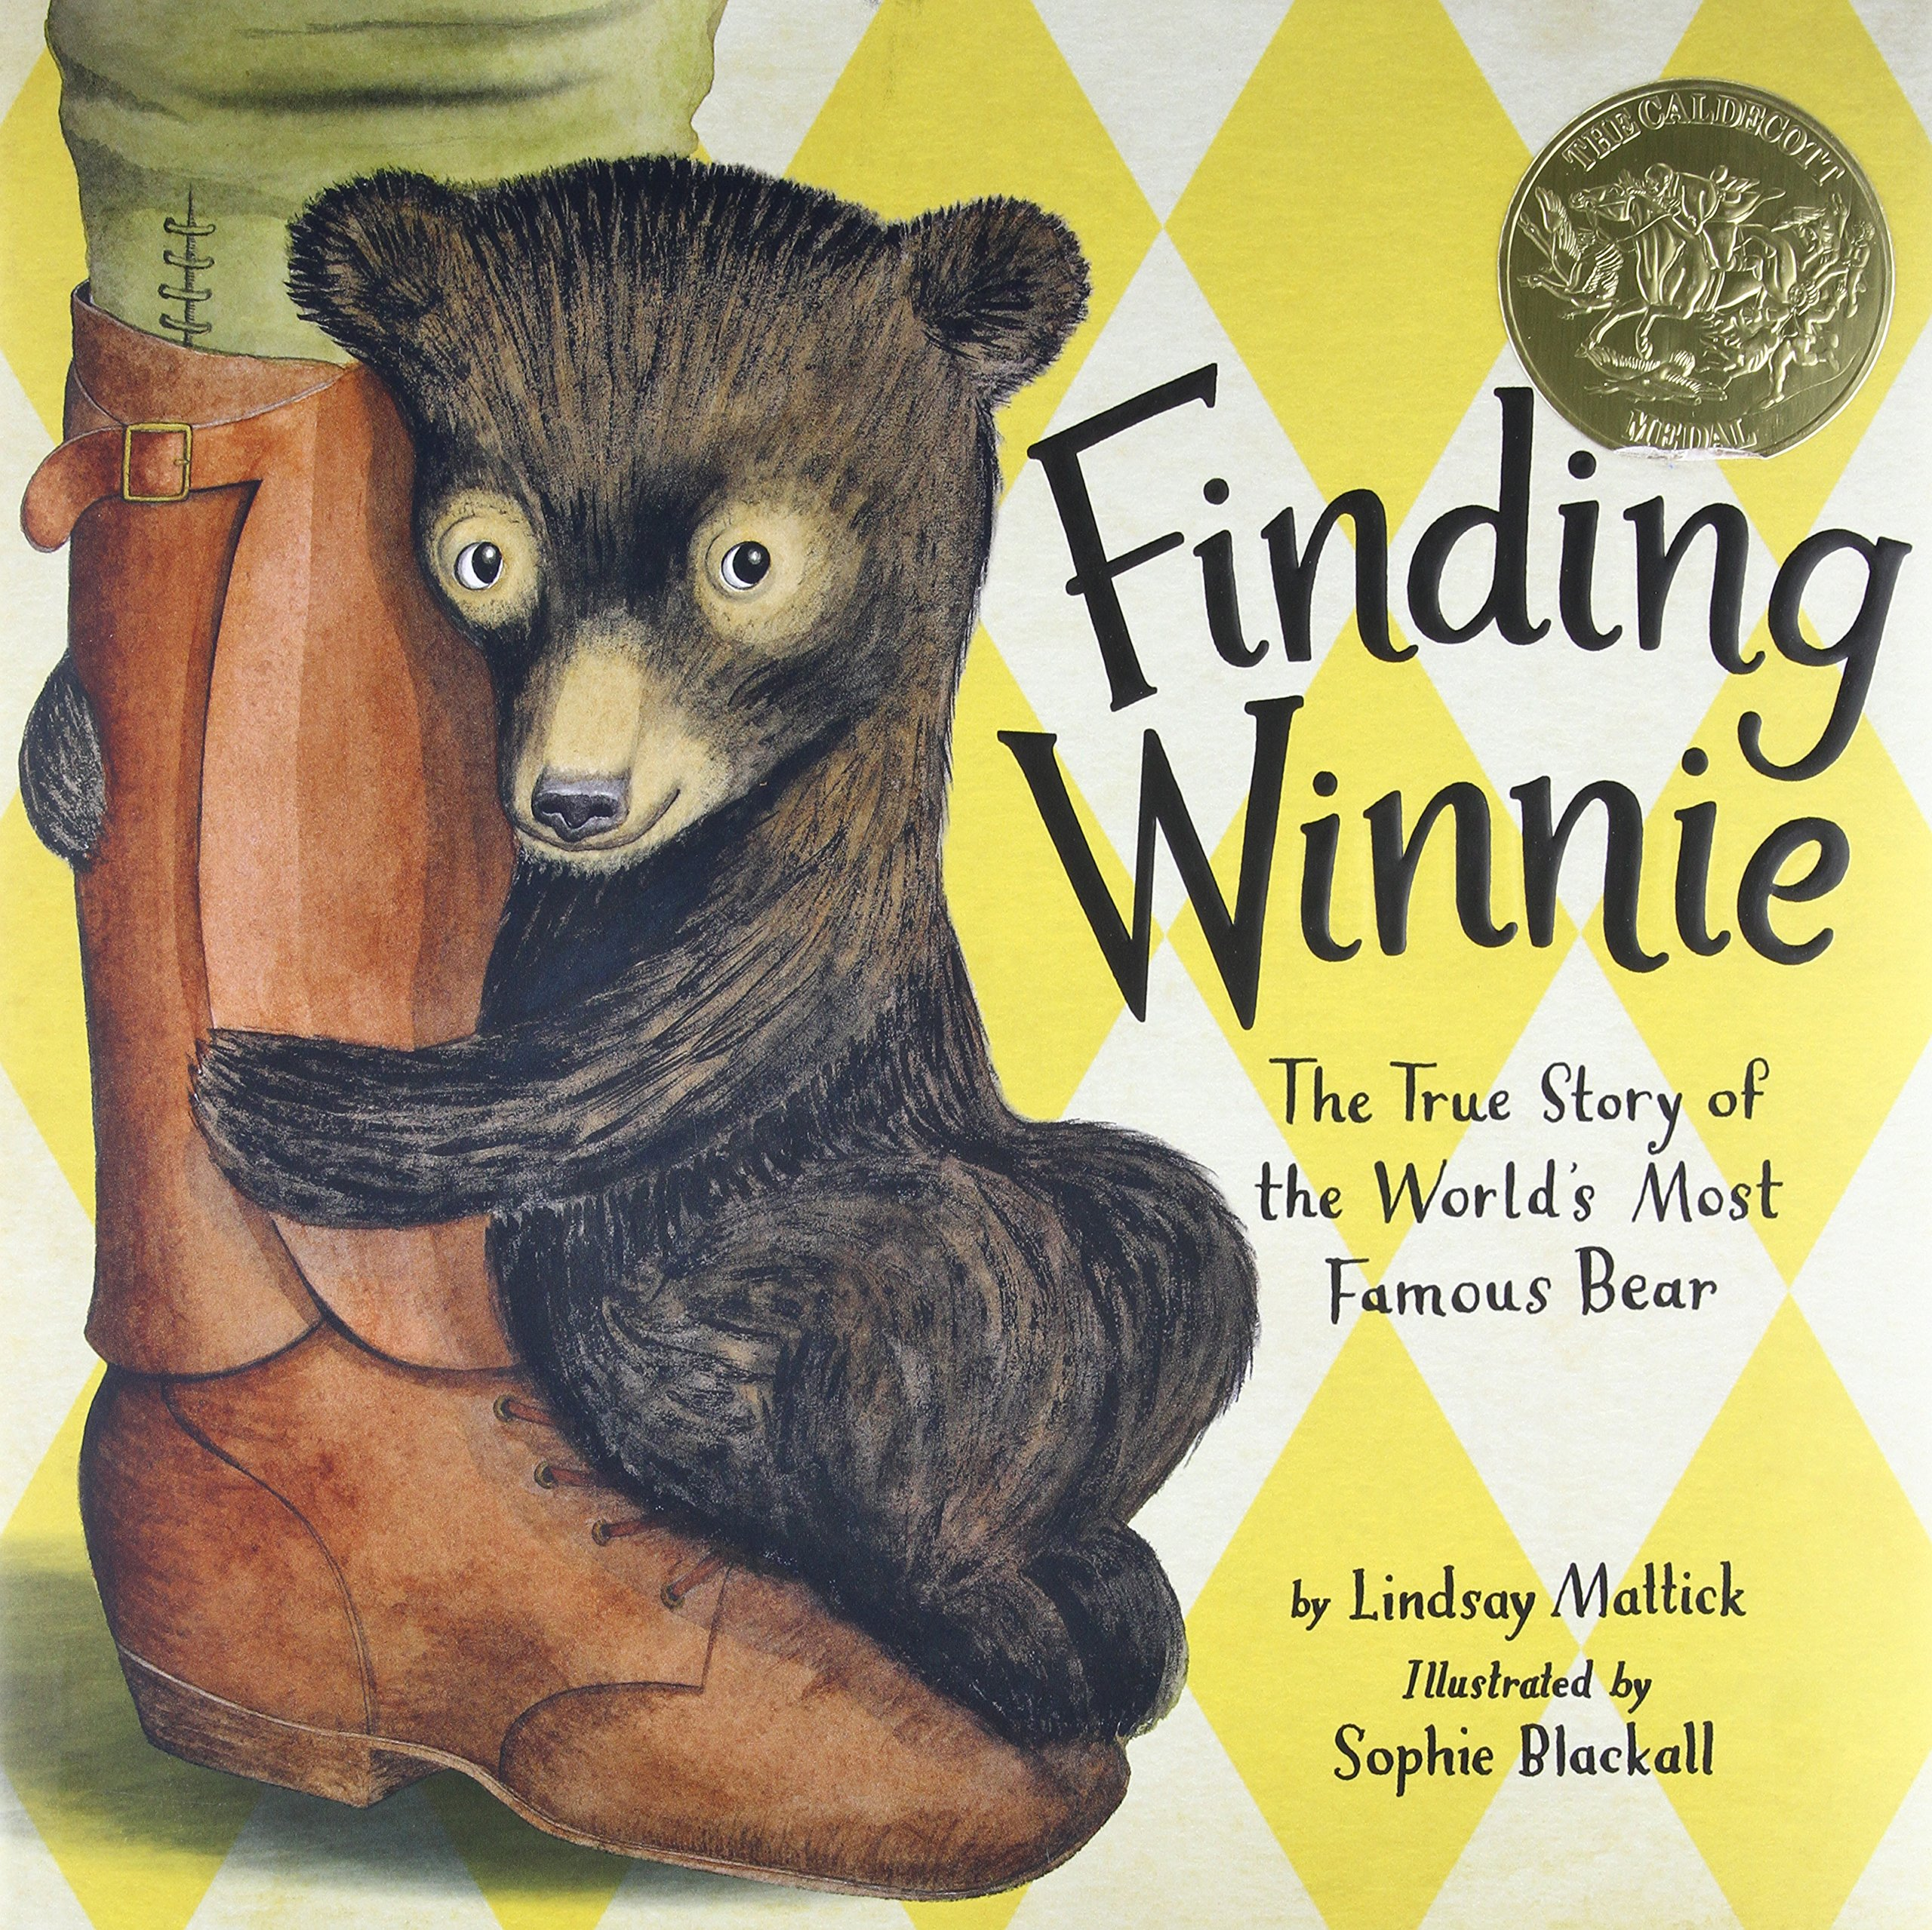 Finding Winnie: The True Story of the World's Most Famous Bear: Mattick,  Lindsay, Blackall, Sophie: 9780316324908: Amazon.com: Books